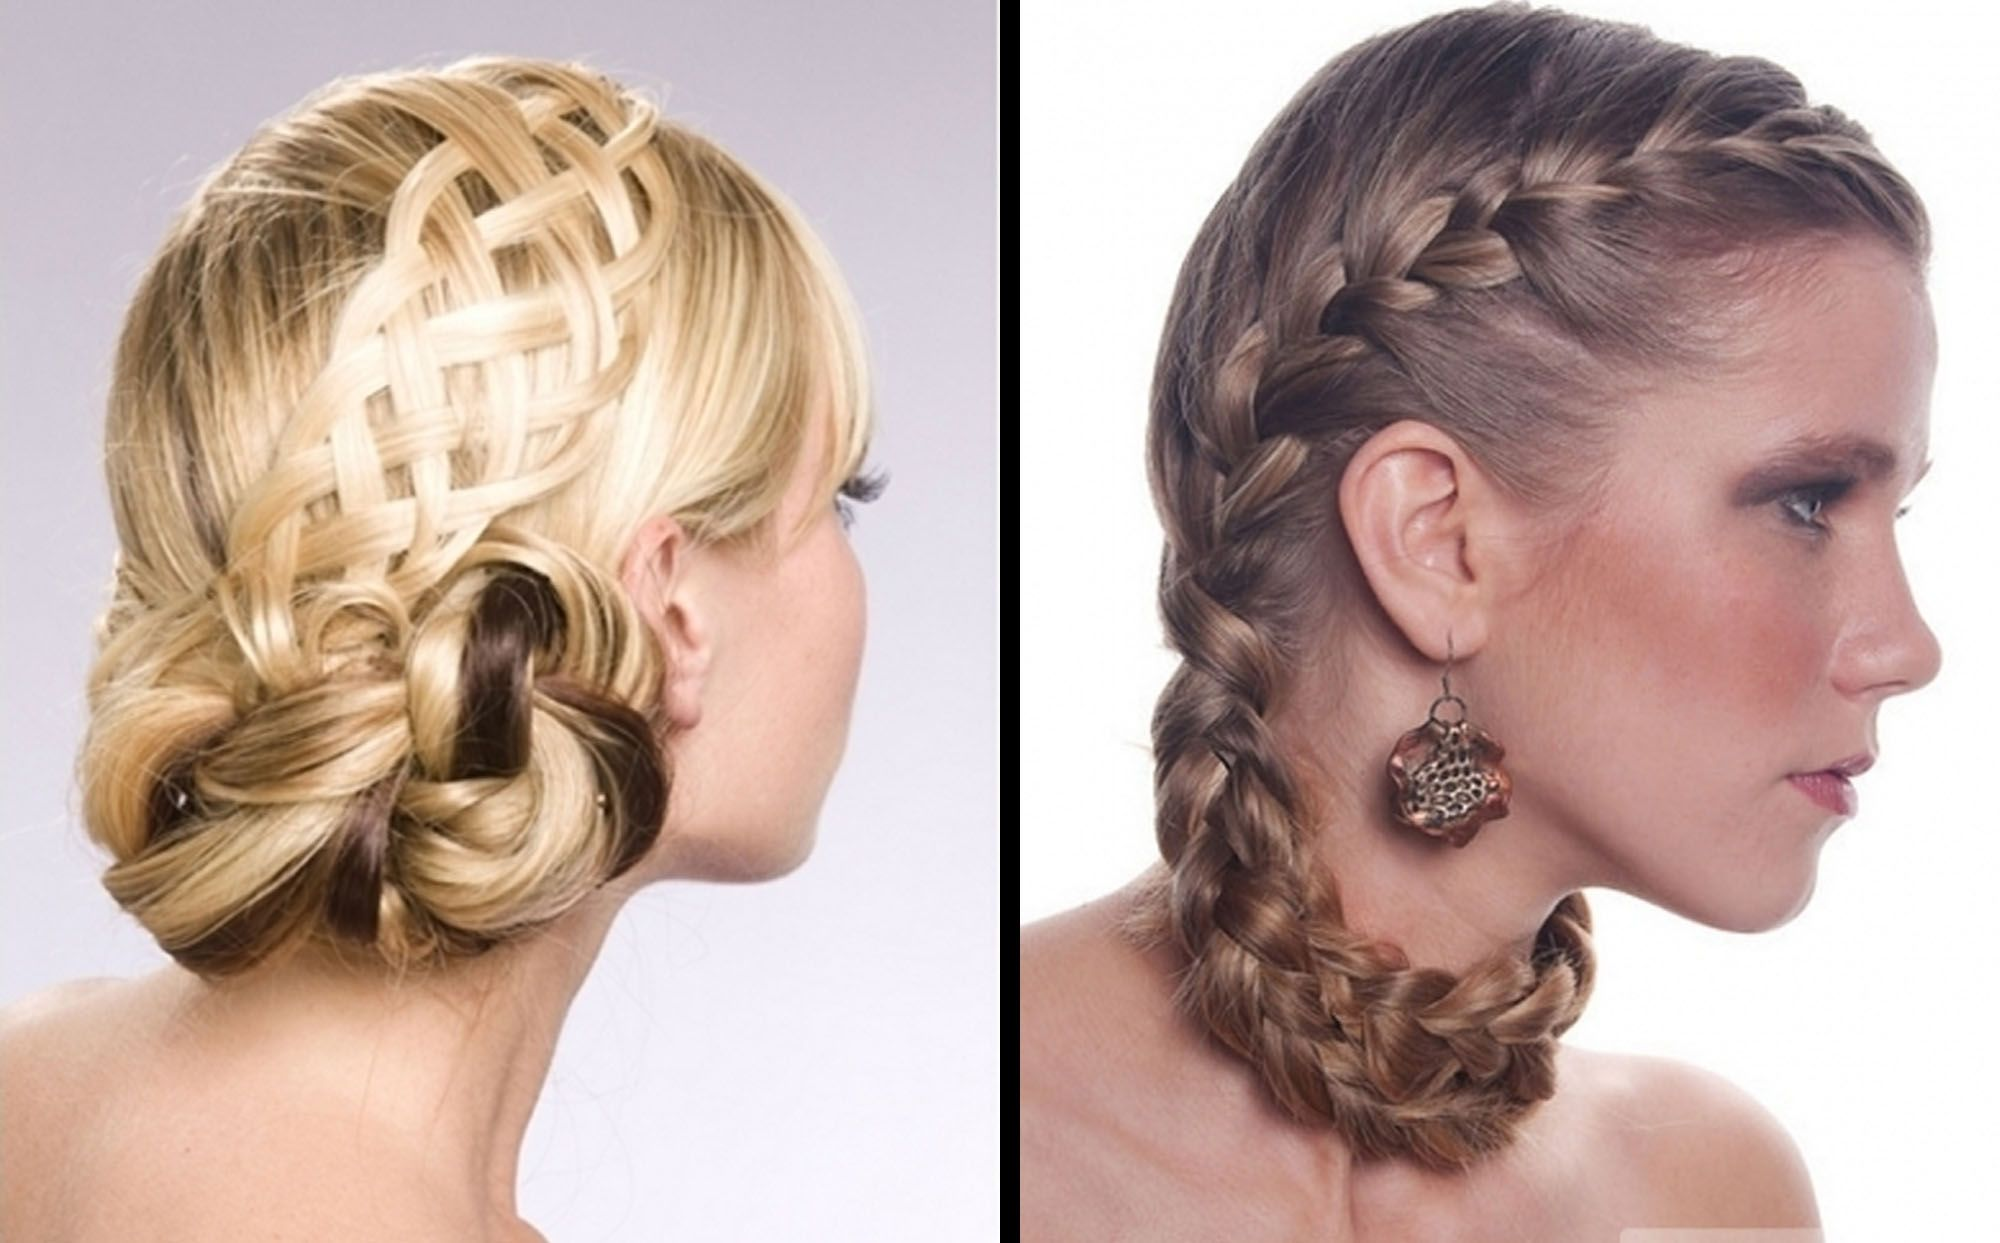 Magnificent 1000 Images About Hair Styles On Pinterest Wedding Hairstyles Short Hairstyles Gunalazisus